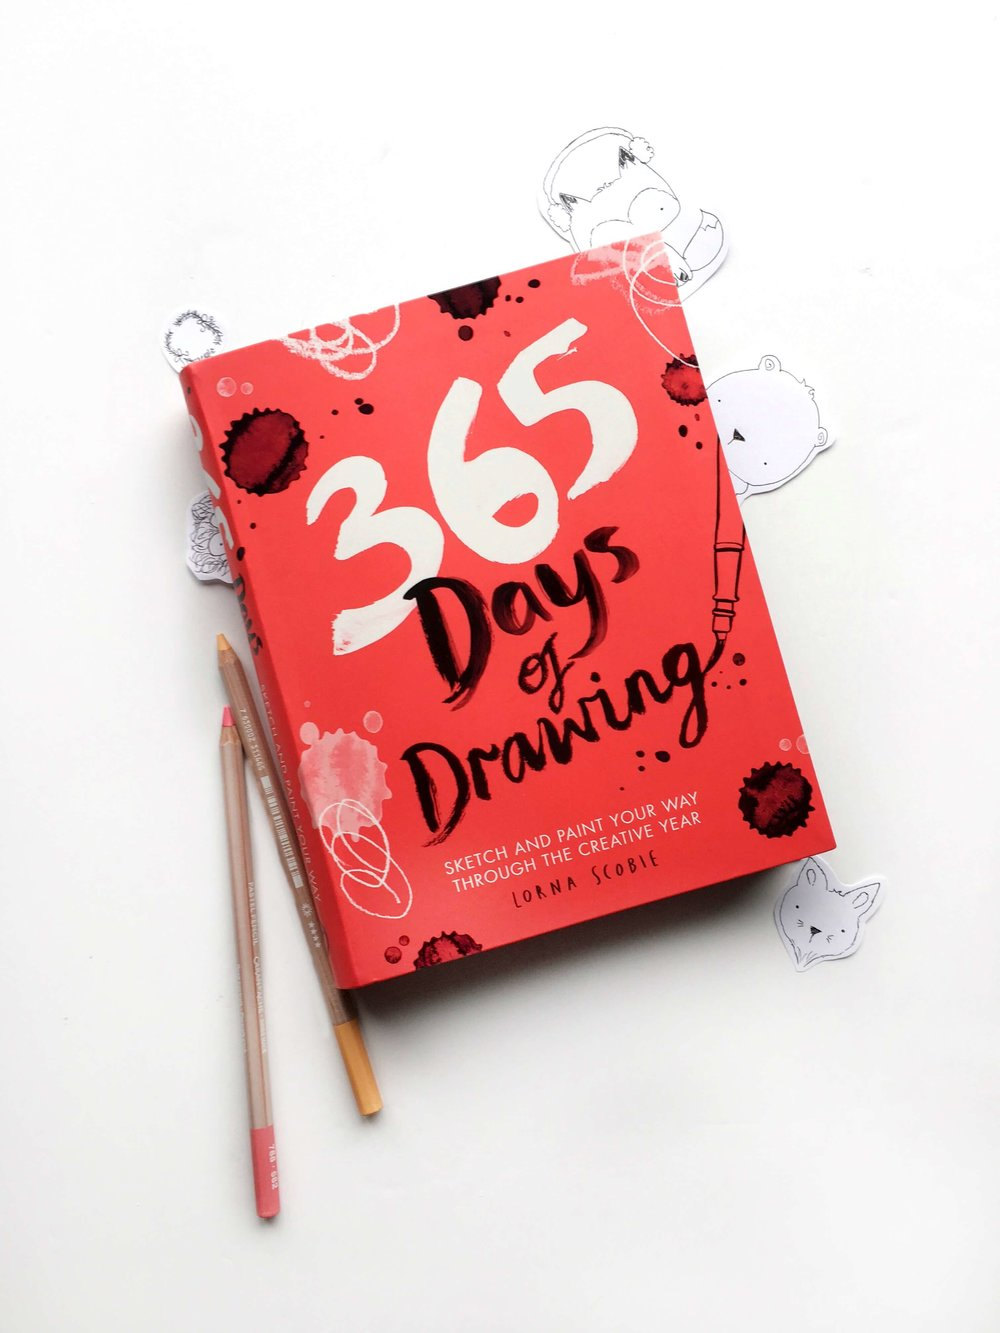 lorna scobie  drawing book.jpg